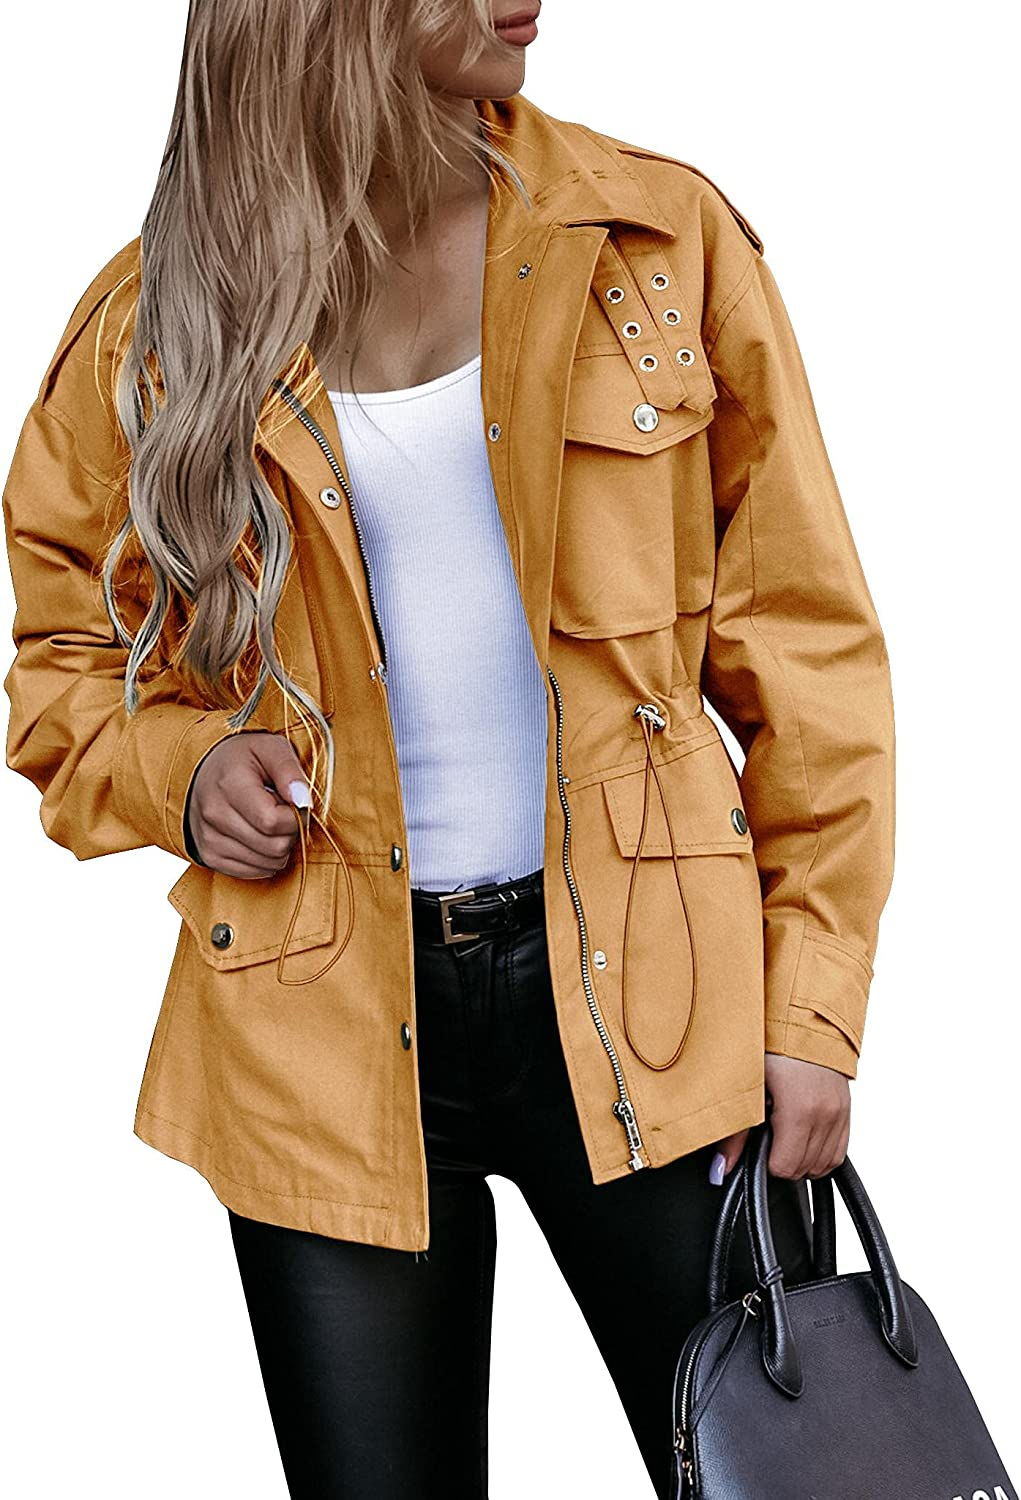 Womens Drawstring Waist Coat Zip Up Solid Color Jacket Long Sleeve Slim Casual Tops with Pockets